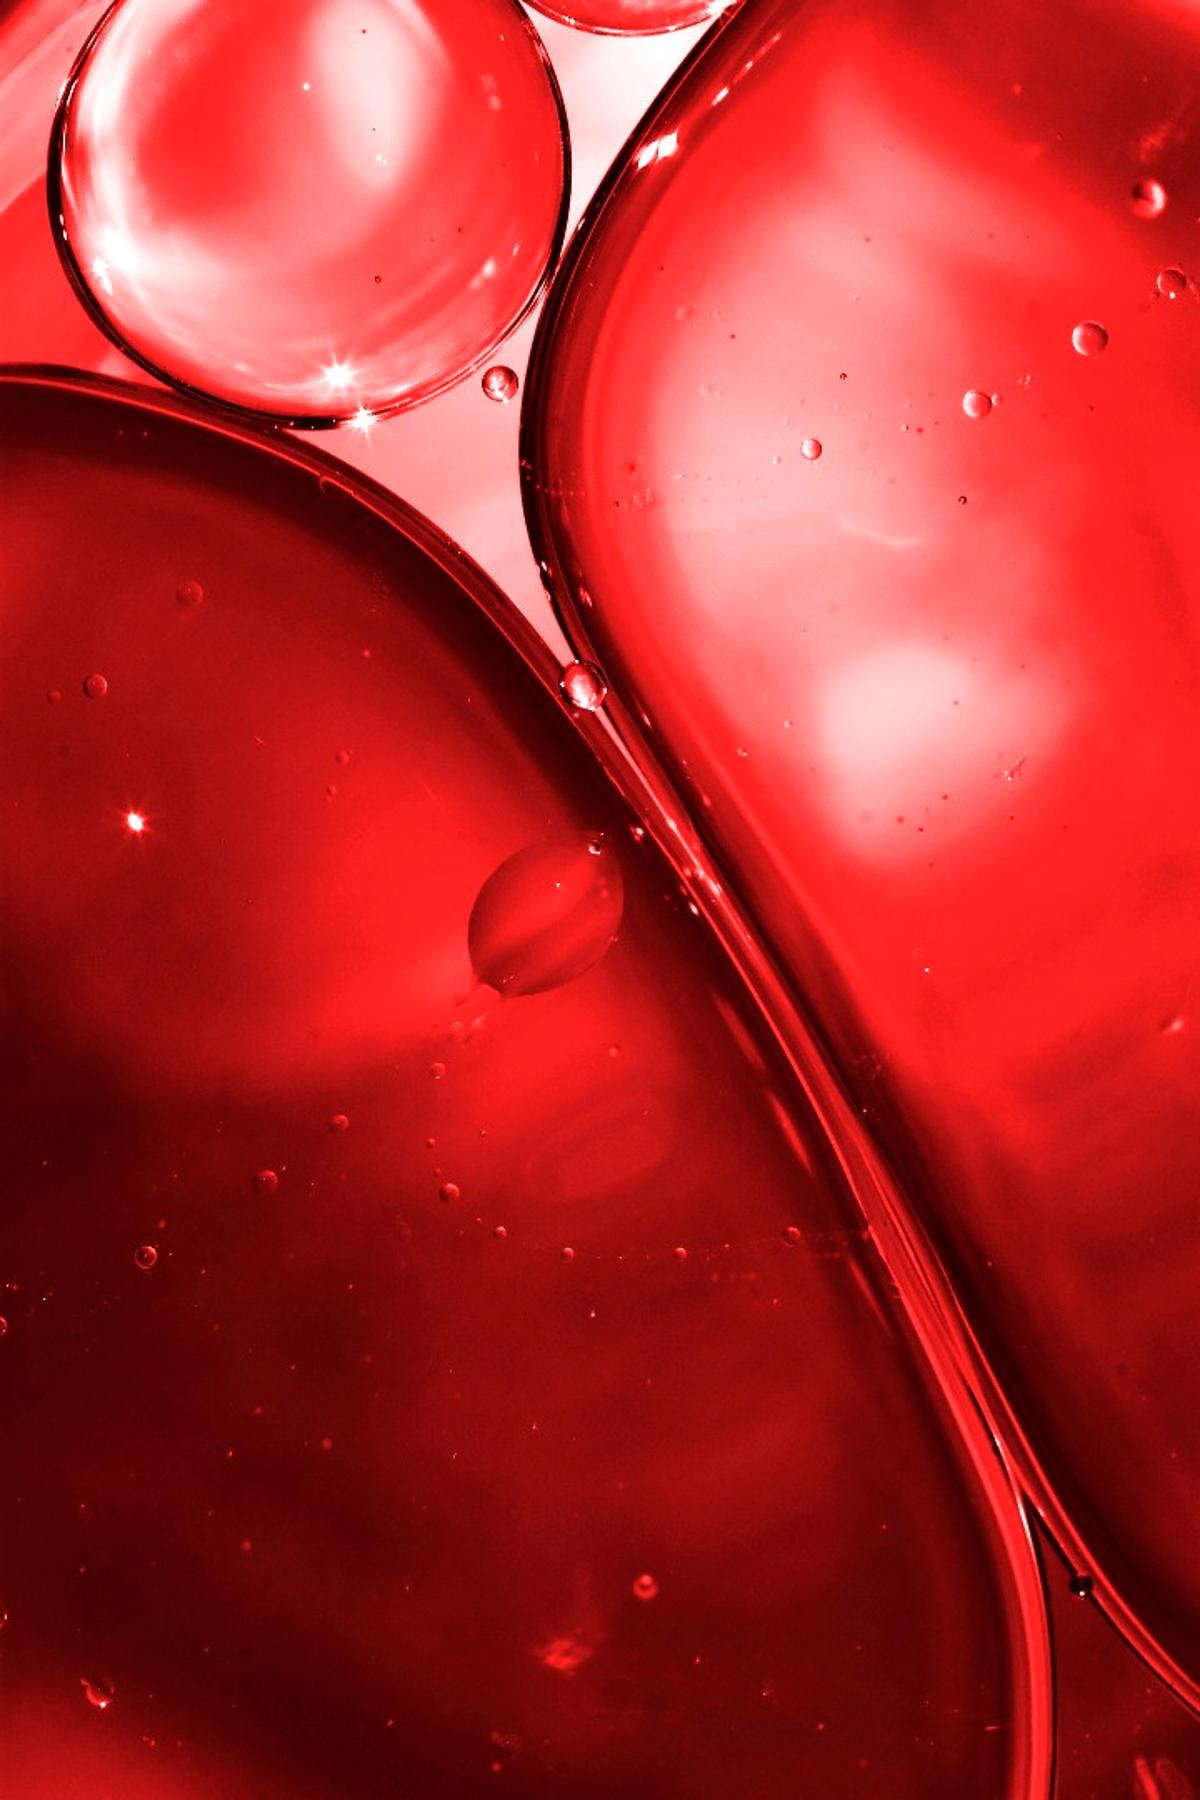 Researchers have found that gas embolotherapy (blowing bubbles in the blood) could fight cancer in two ways